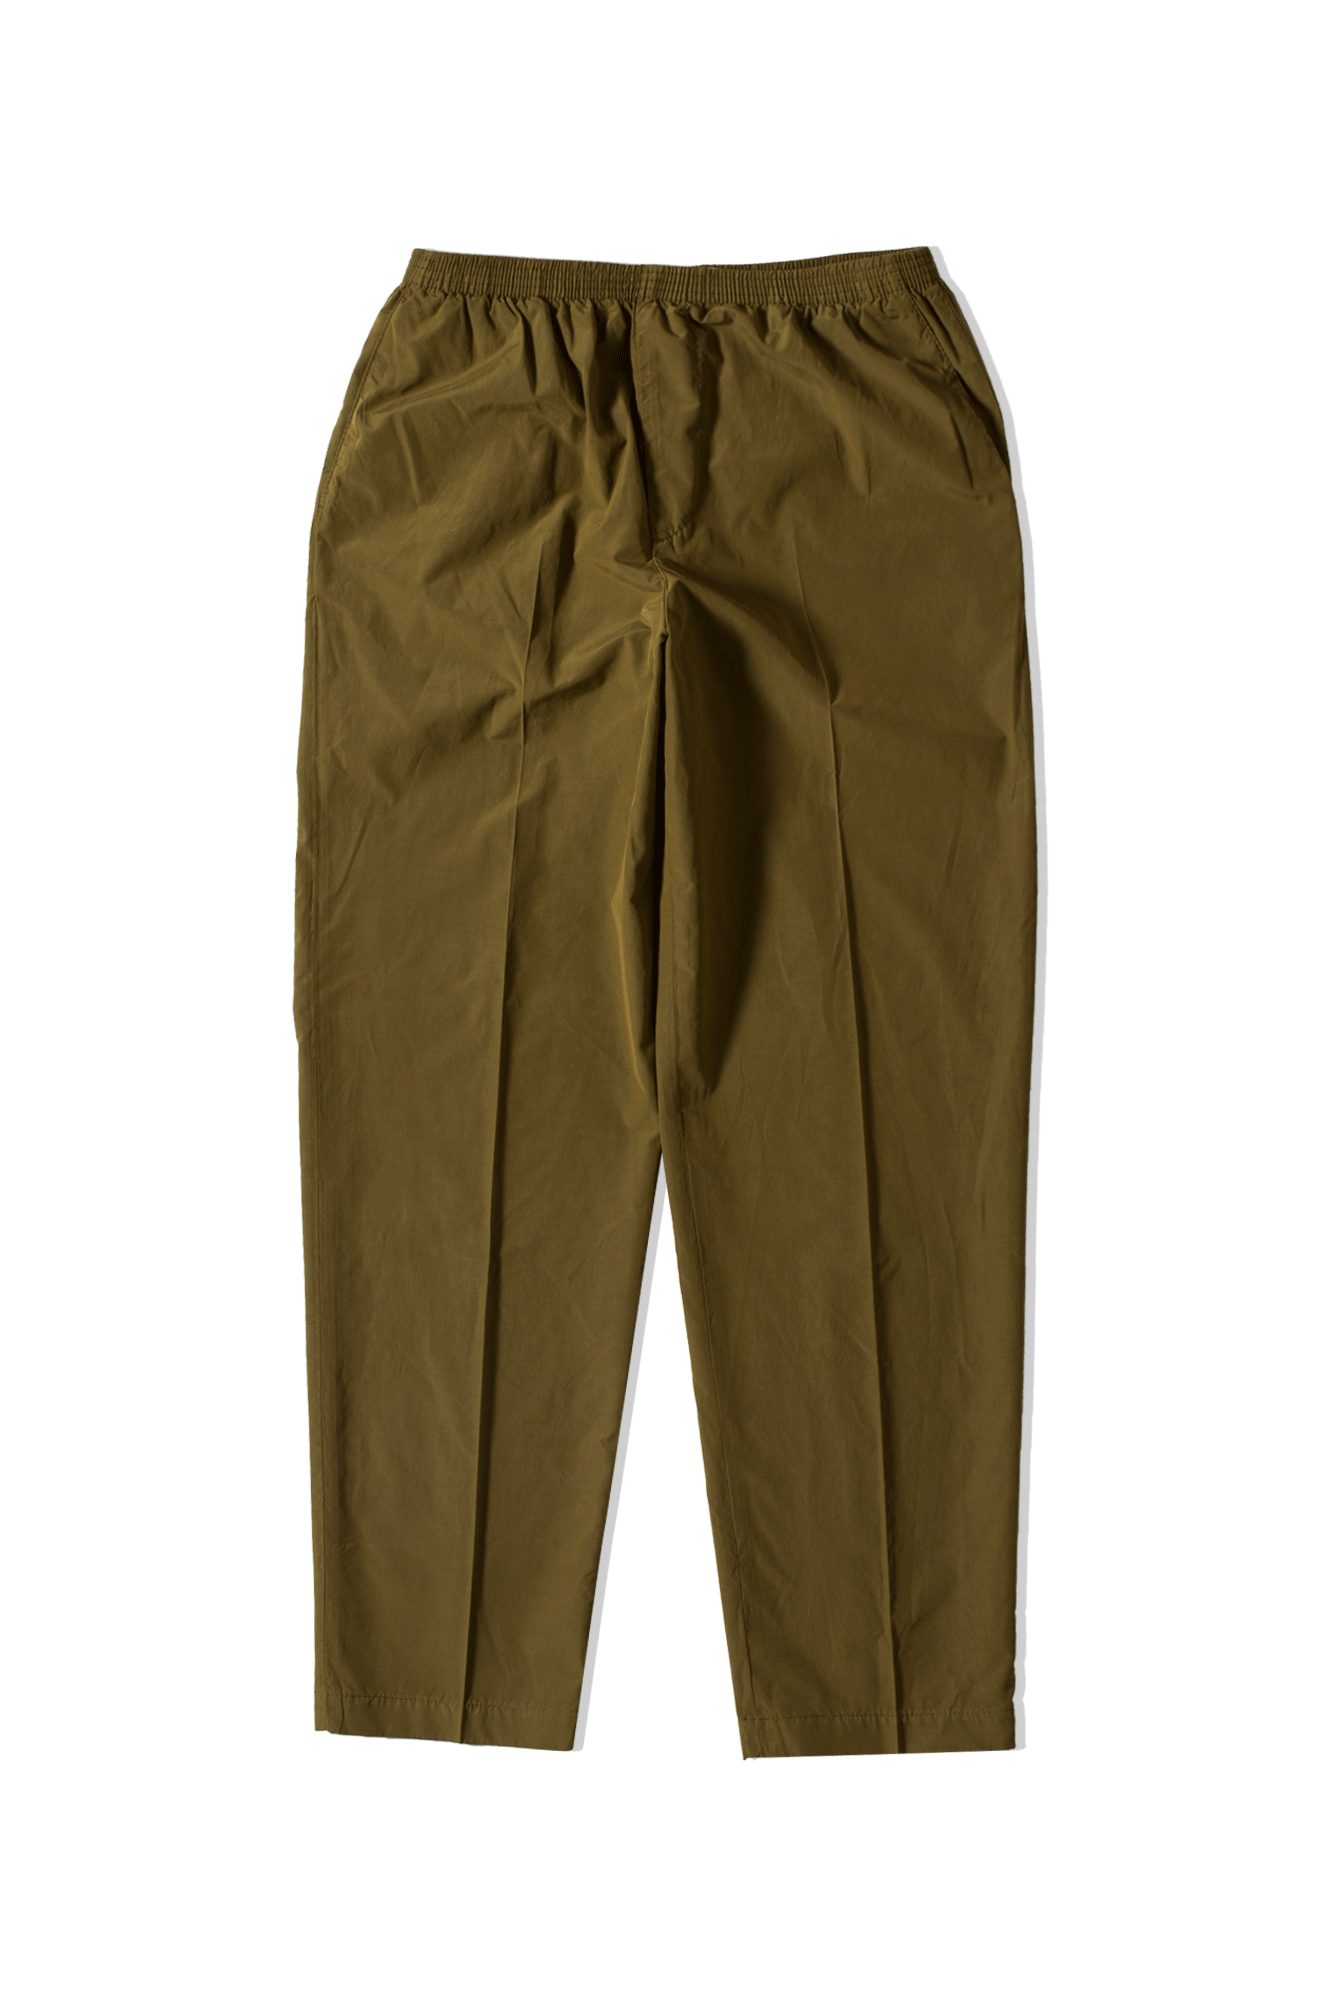 Cellar Door Trousers Alfred Brown LA110019#LF309#76#48 - One Block Down